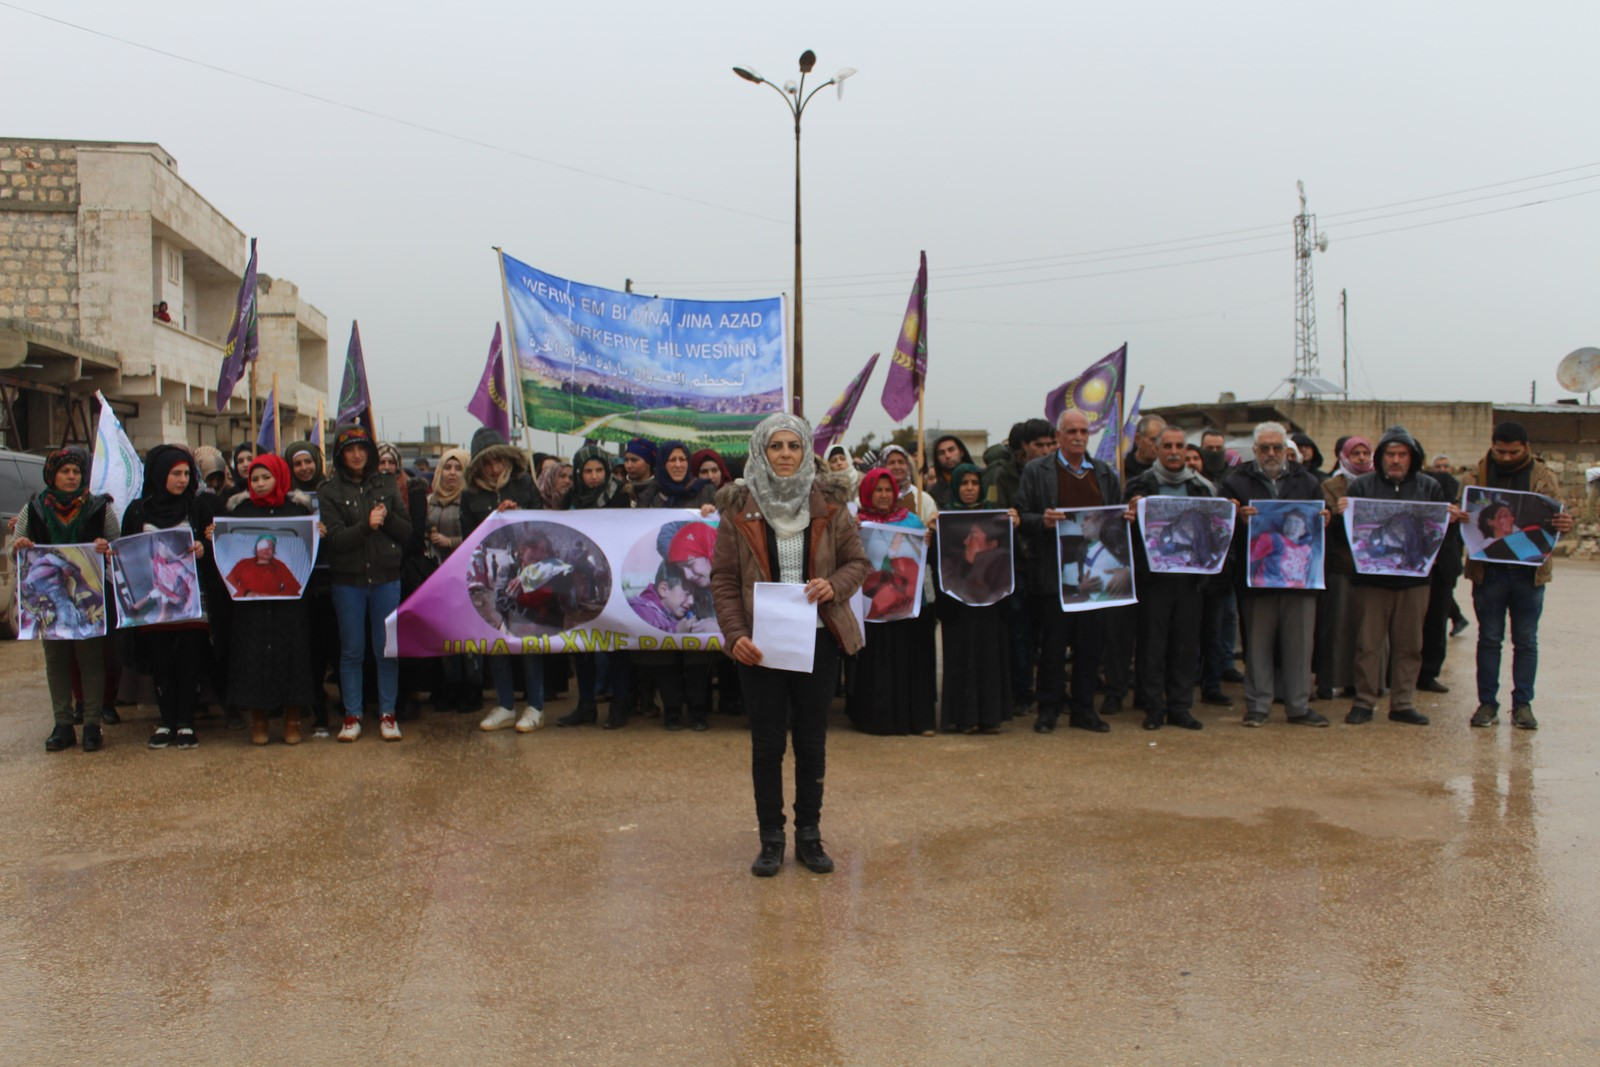 Free Women's Union in al-Shahba denounce occupation, Turkish threats to Afrin, north Syria